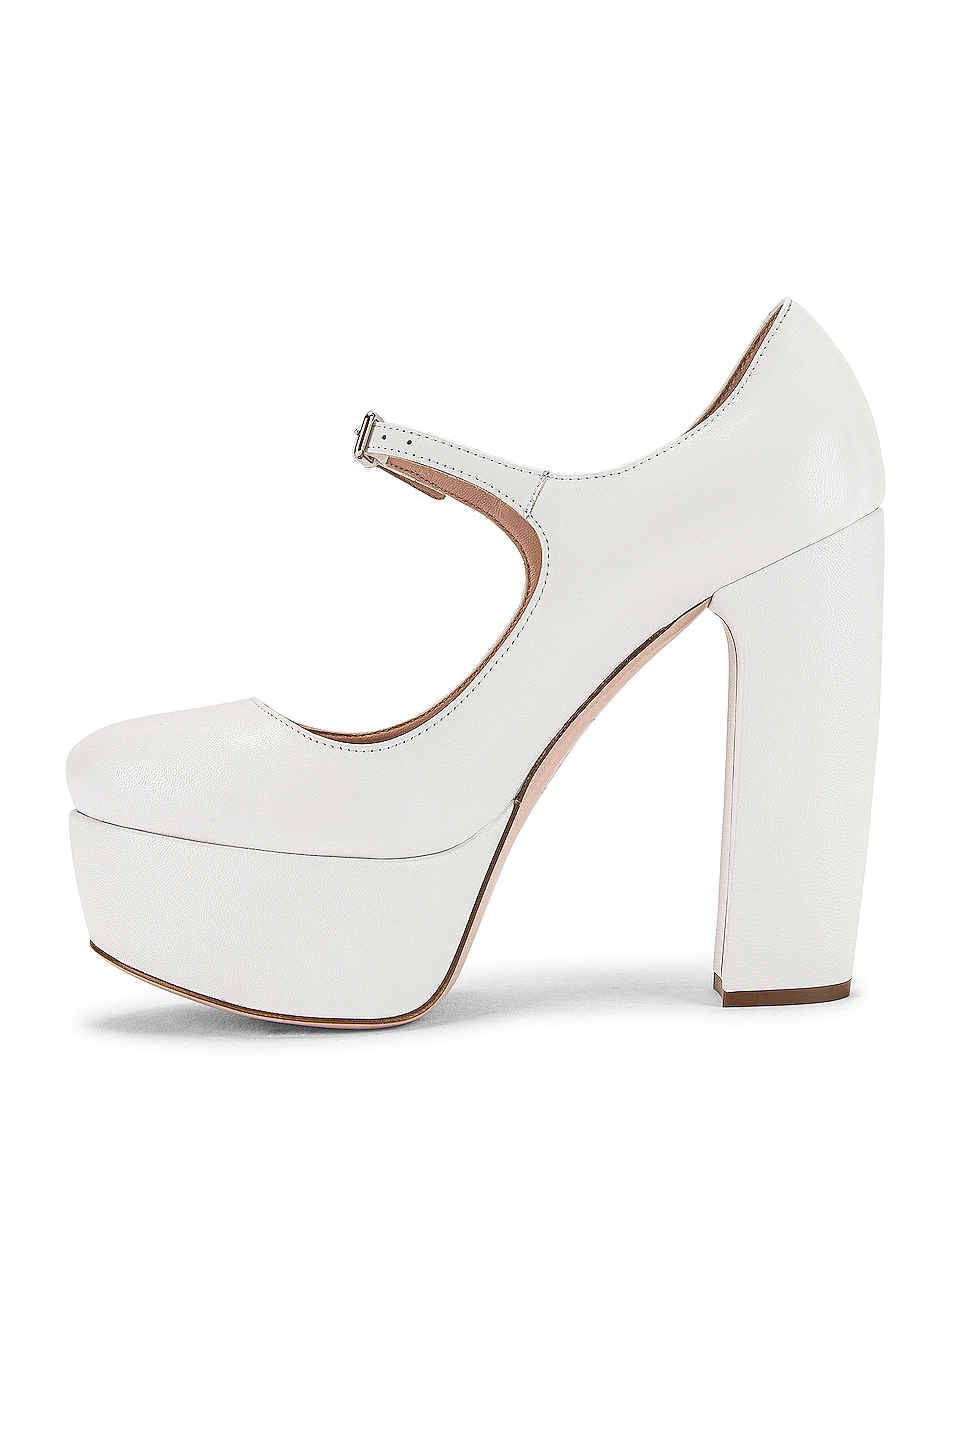 Image 5 of Miu Miu Plain Mary Jane Platform Heels in White